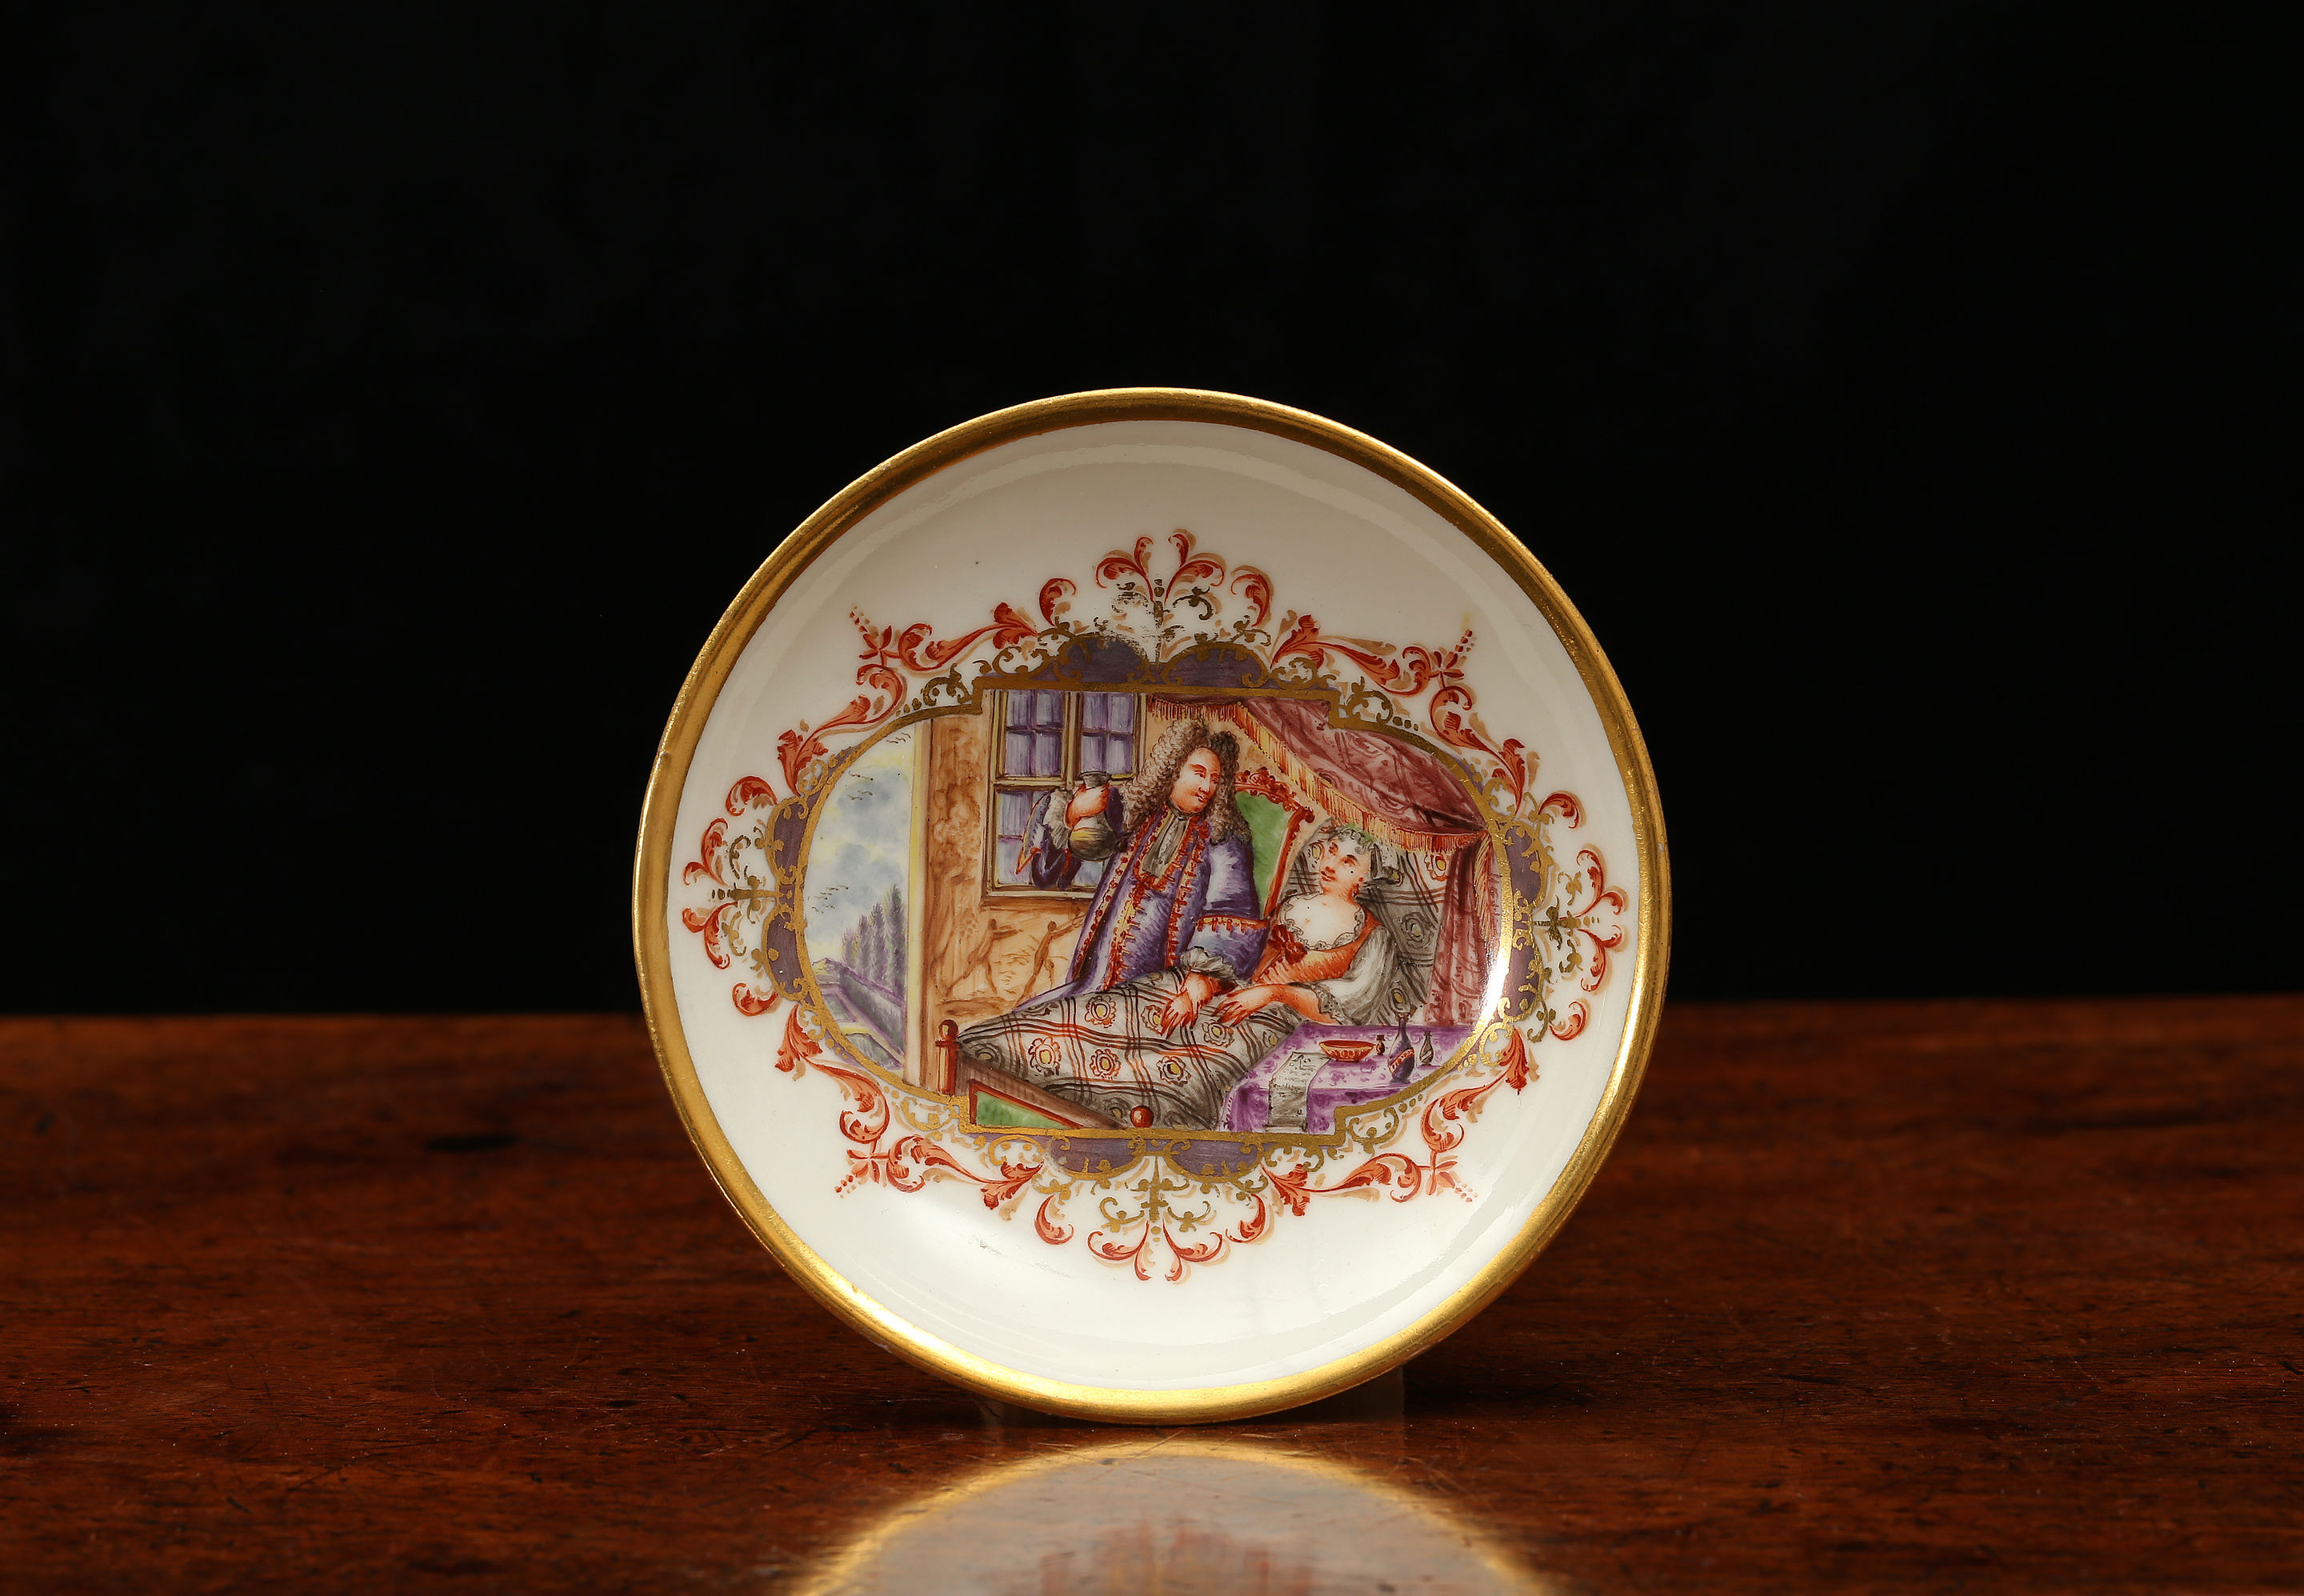 A MEISSEN SAUCER WITH A BEDSIDE SCENE, Probably painted by Johann Gregorius Höroldt